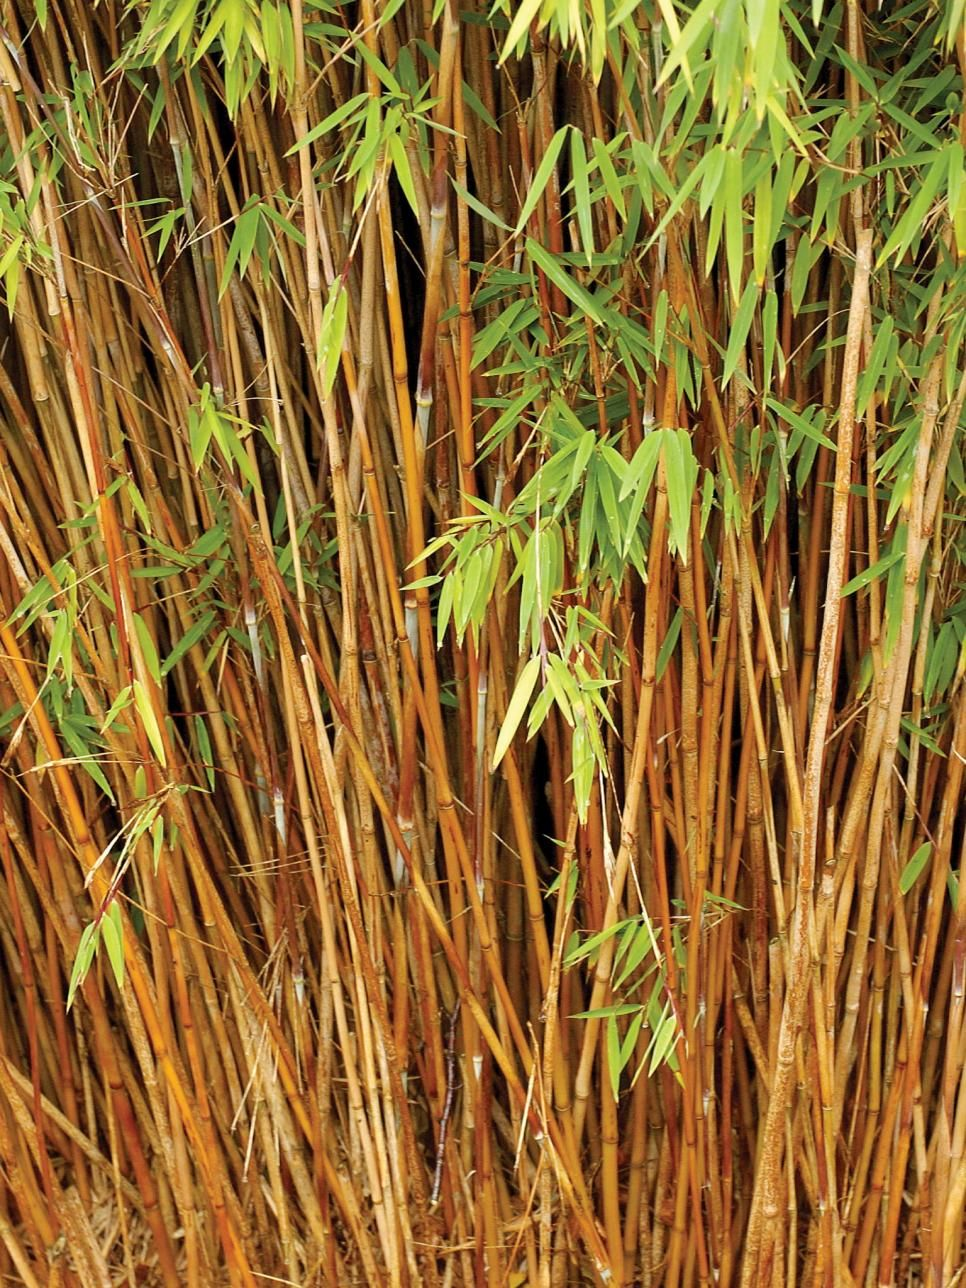 Fountain Bamboo The fountain bamboo has slender, purple-green canes topped  by narrow, mid-green leaves. It is compact and slow-growing.